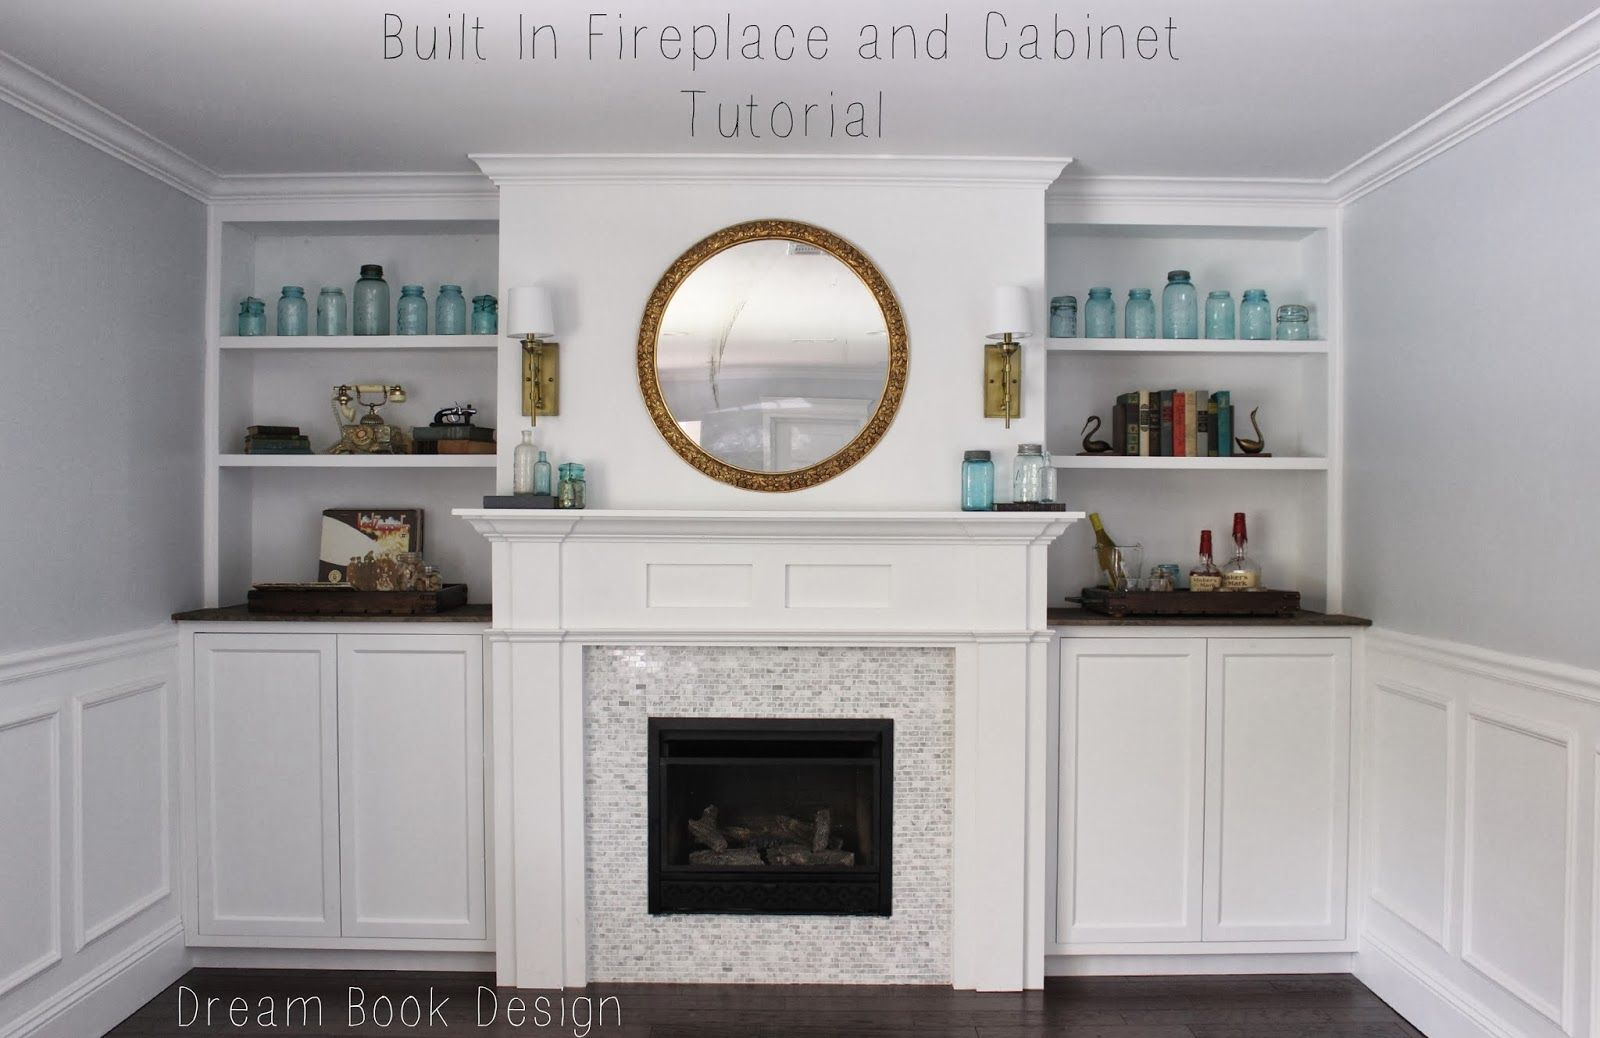 built in fireplace and cabinets tutorial dream book tutorials built in fireplace and cabinets tutorial